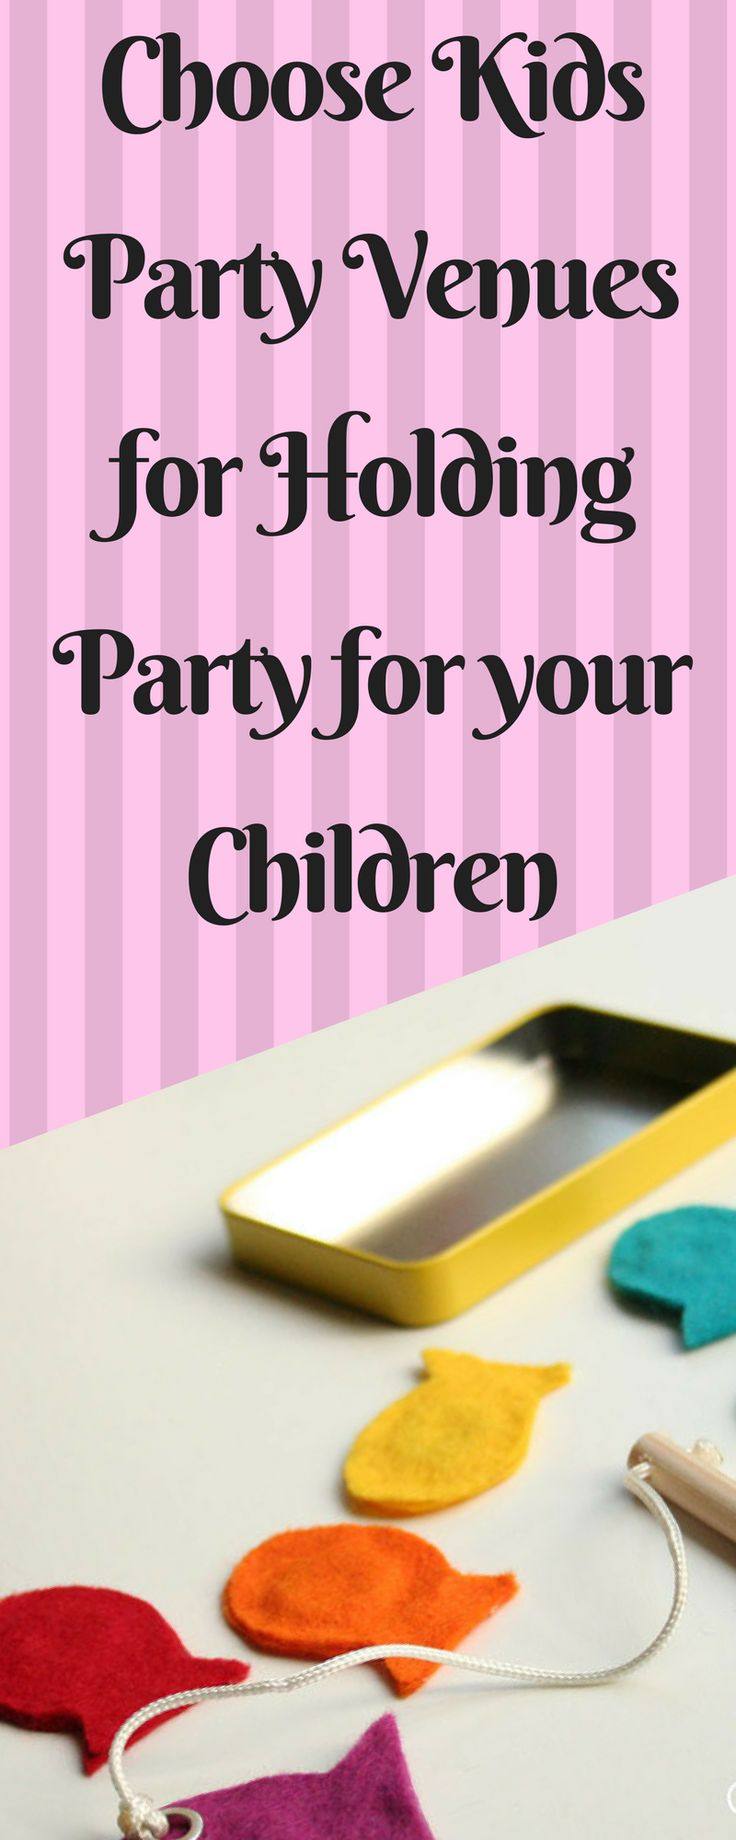 Choose Kids Party Venues for Holding Party for your Children kids crafts kids crafts for boys kids party games kids party ideas